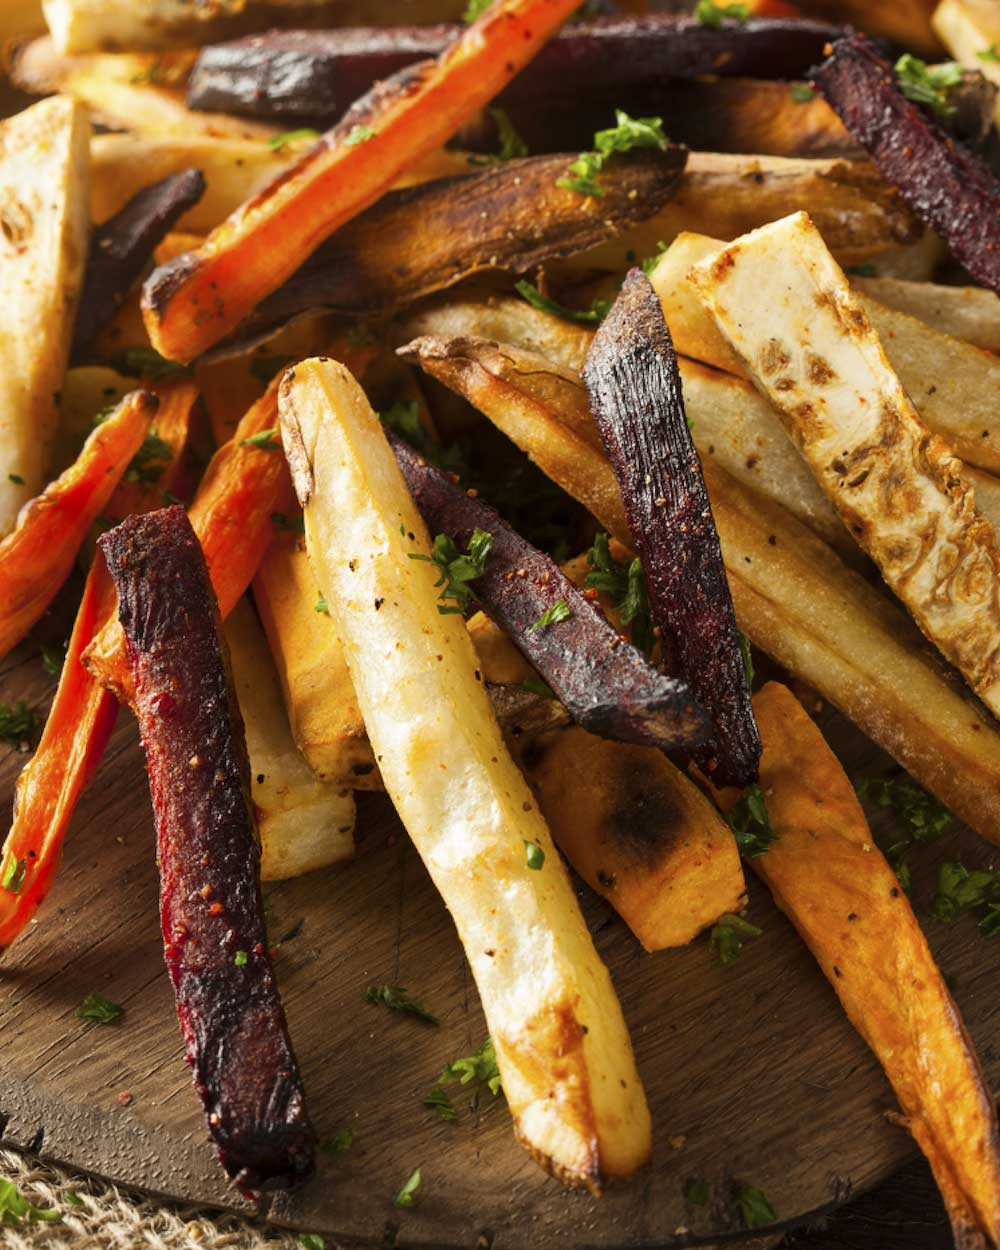 Crispy Baked Beet and Sweet Potato Fries